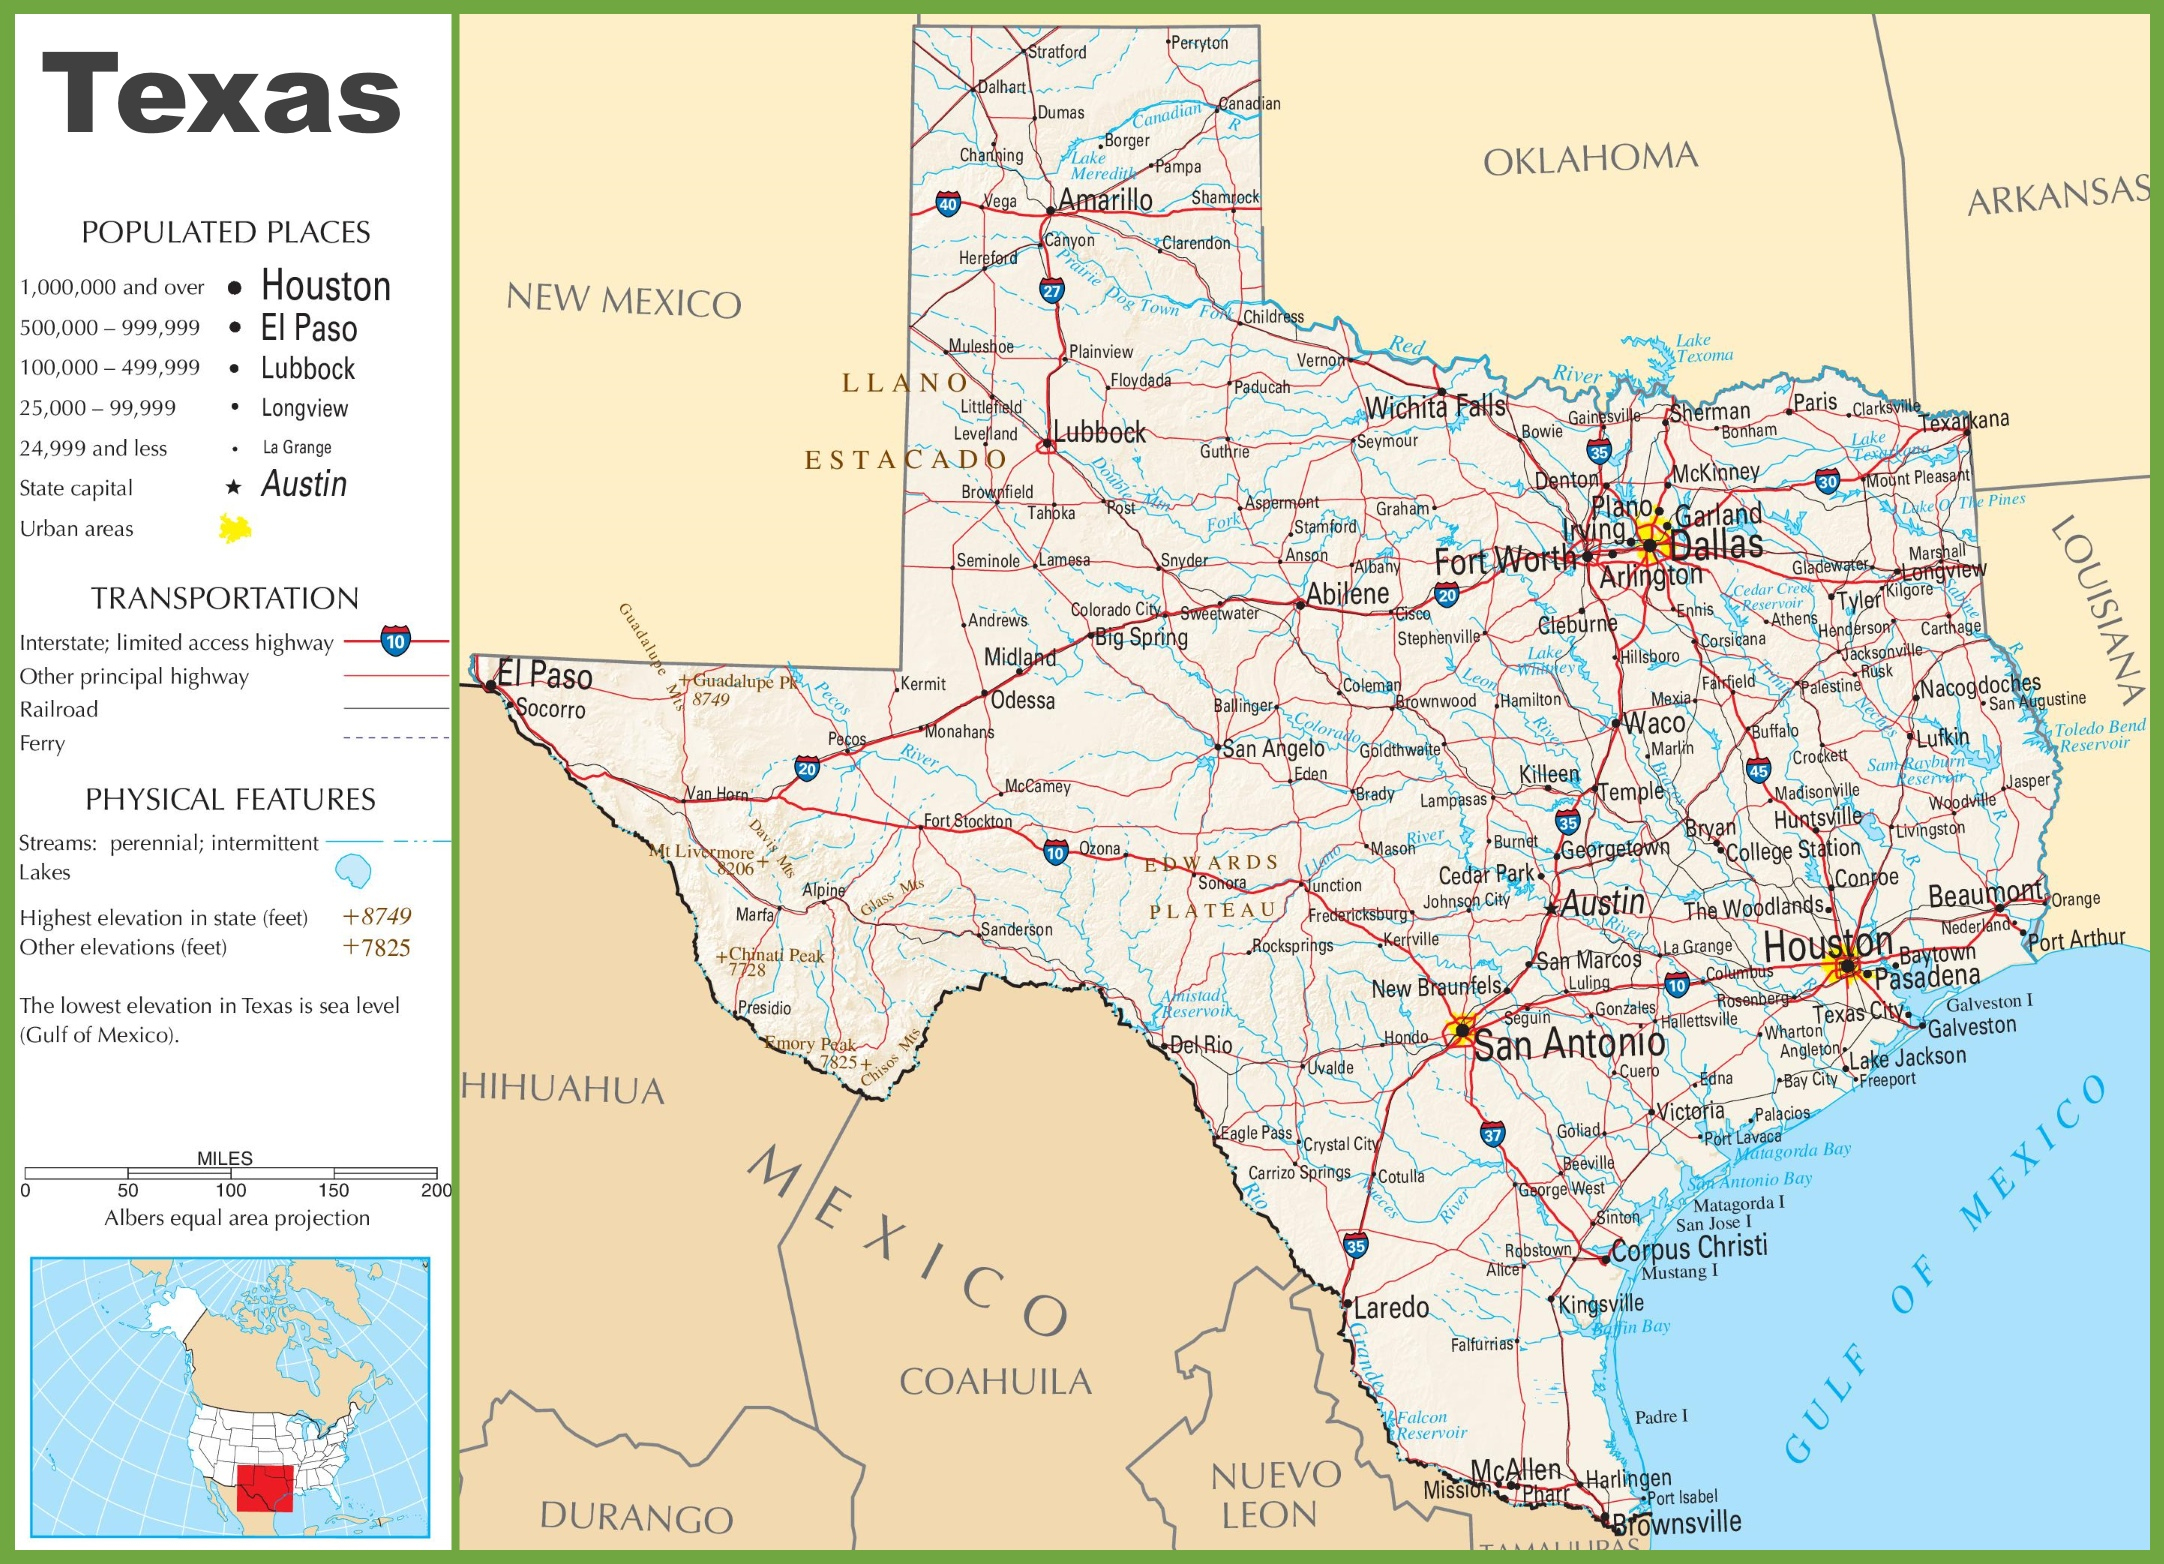 Texas Highway Map - Ok Google Show Me A Map Of Texas